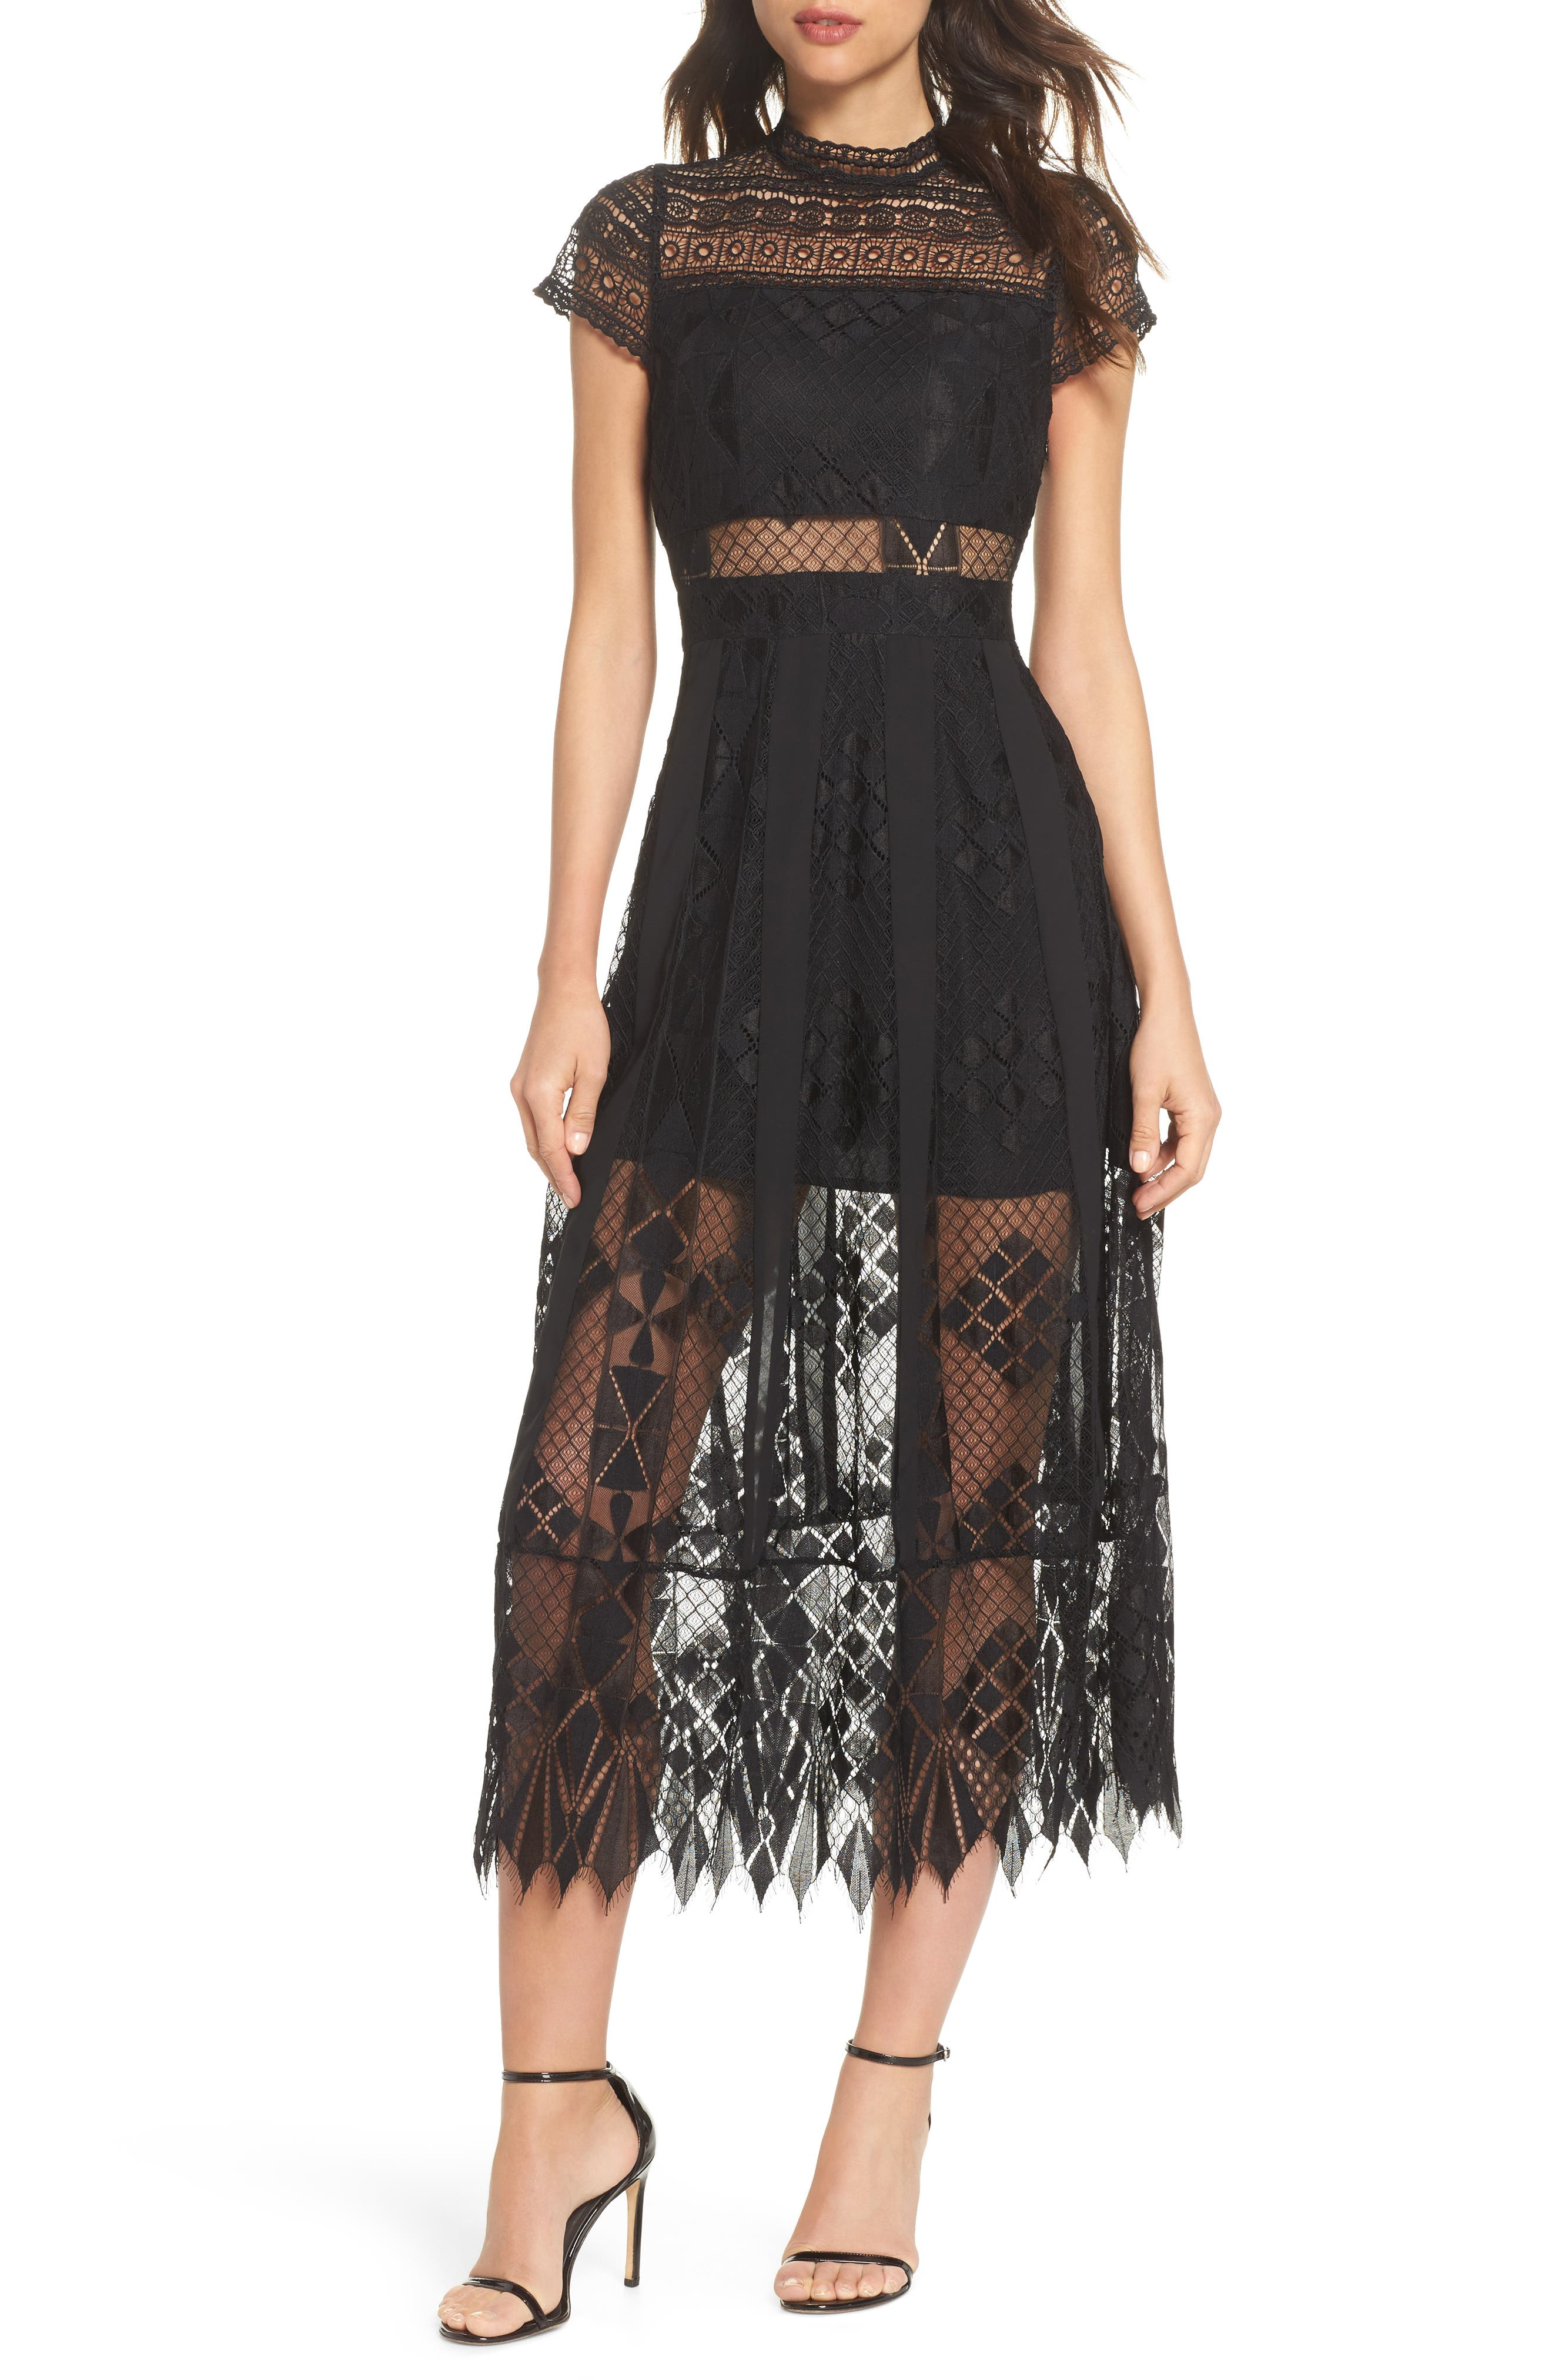 Calla Lace Midi Dress,                         Main,                         color, Black